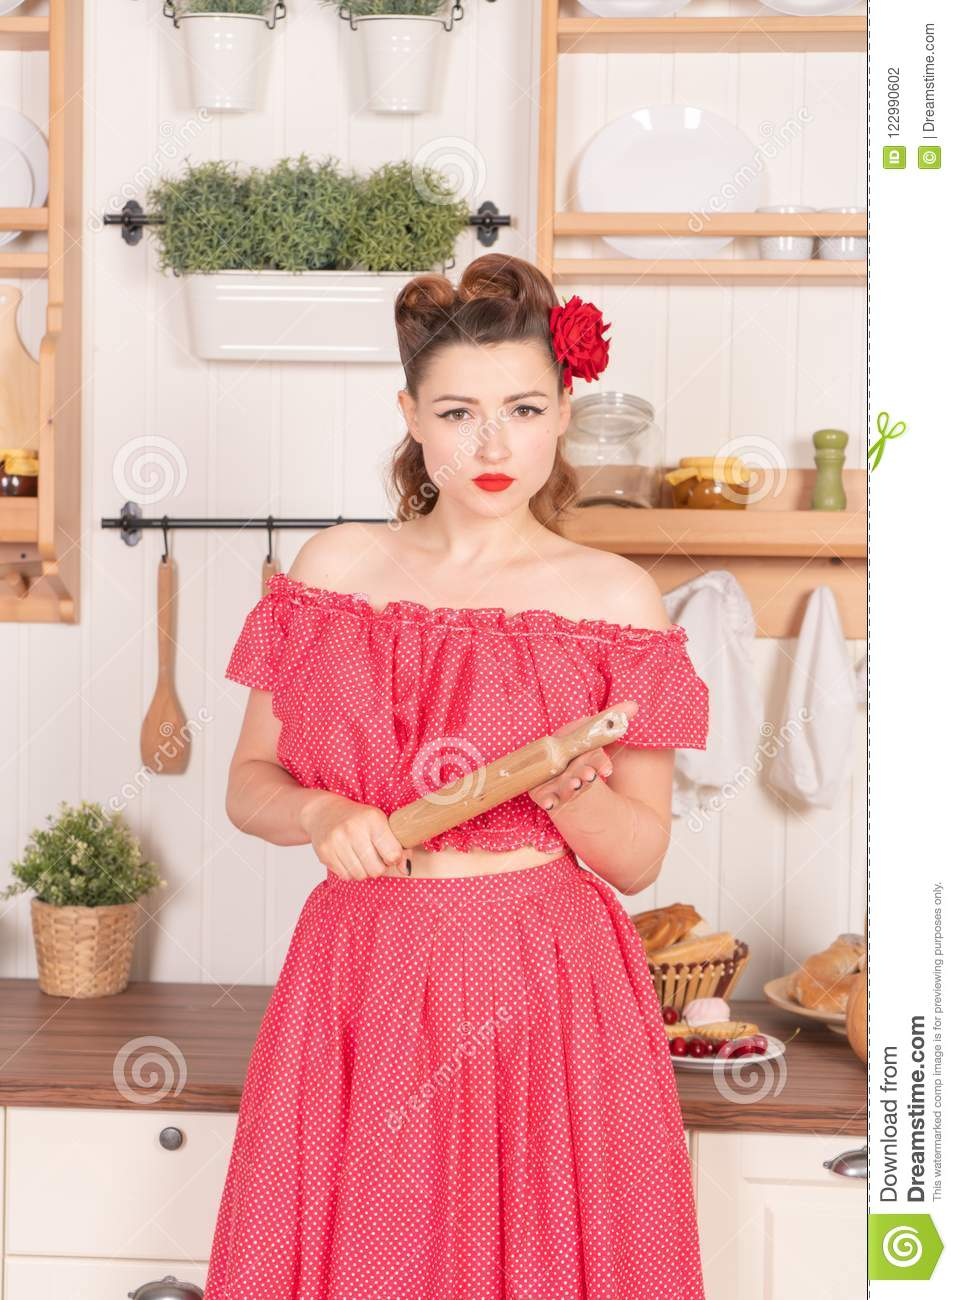 Beautiful young girl with flower in her hair posing in red pin up polka dot dress at home in the kitchen